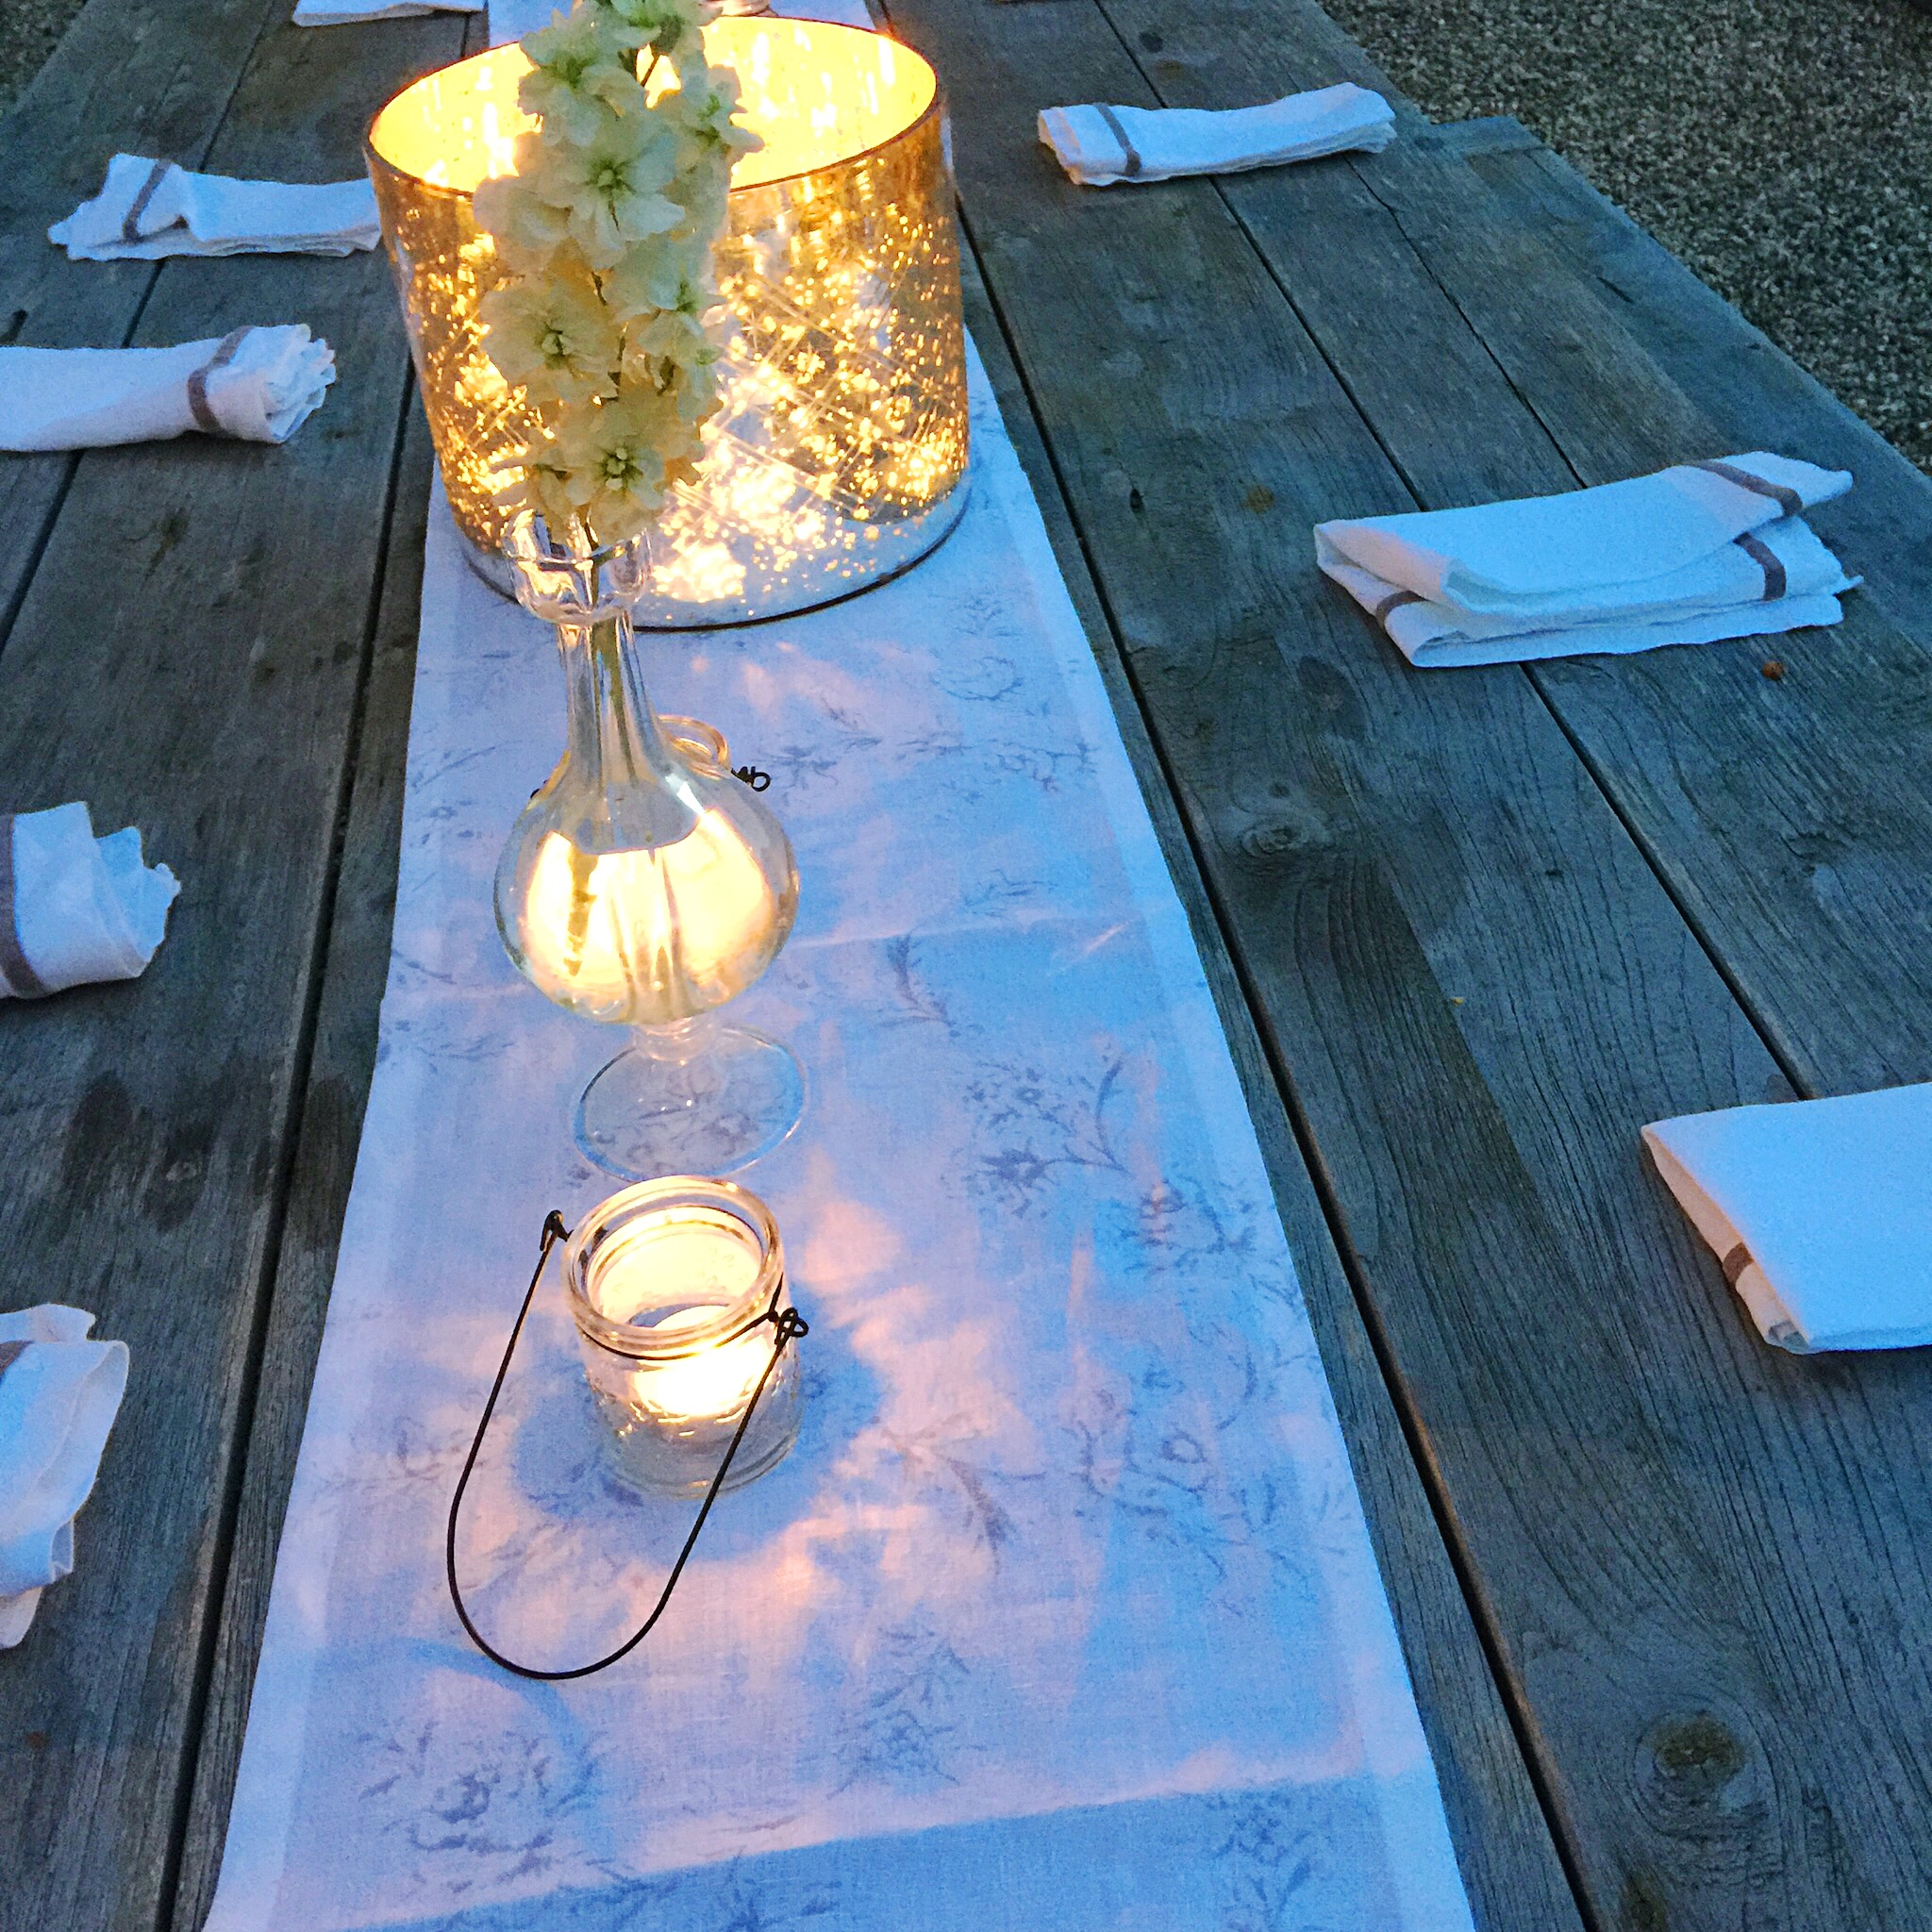 Setting the table outside (doesn't happen every year unfortunately)